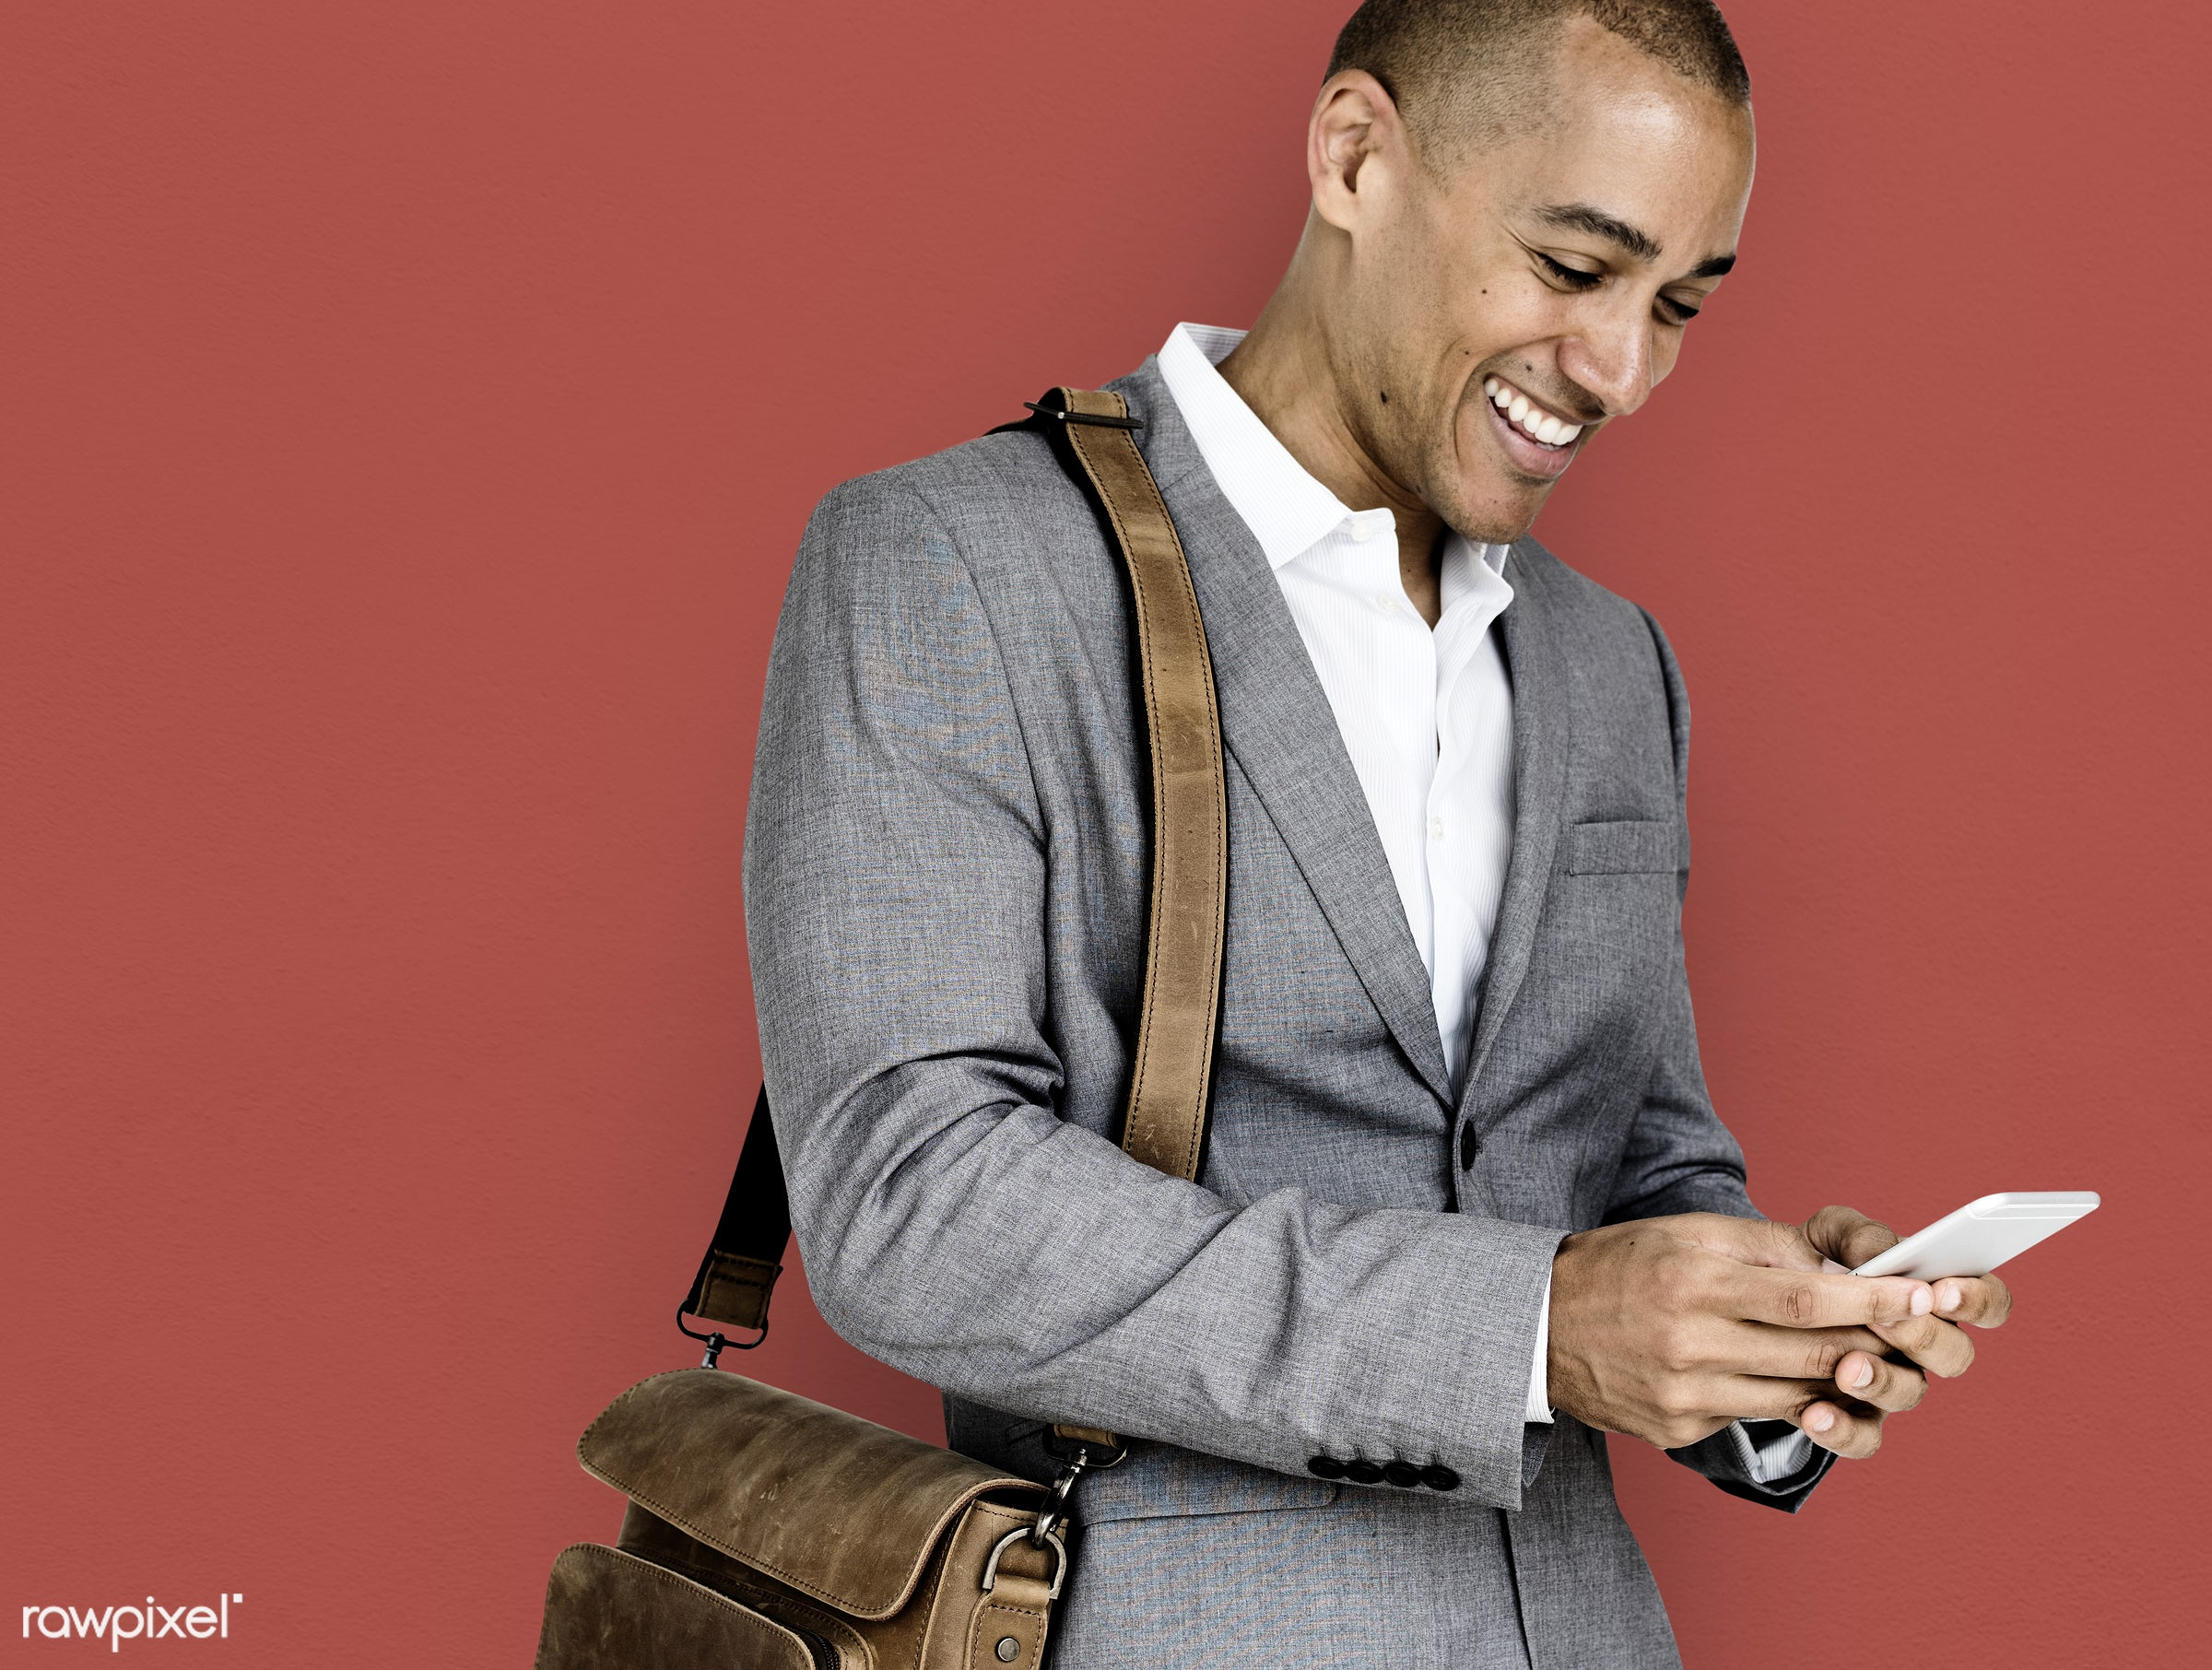 expression, studio, person, phone, business wear, messenger bag, joy, people, joyous, happy, messaging, smile, cheerful, man...